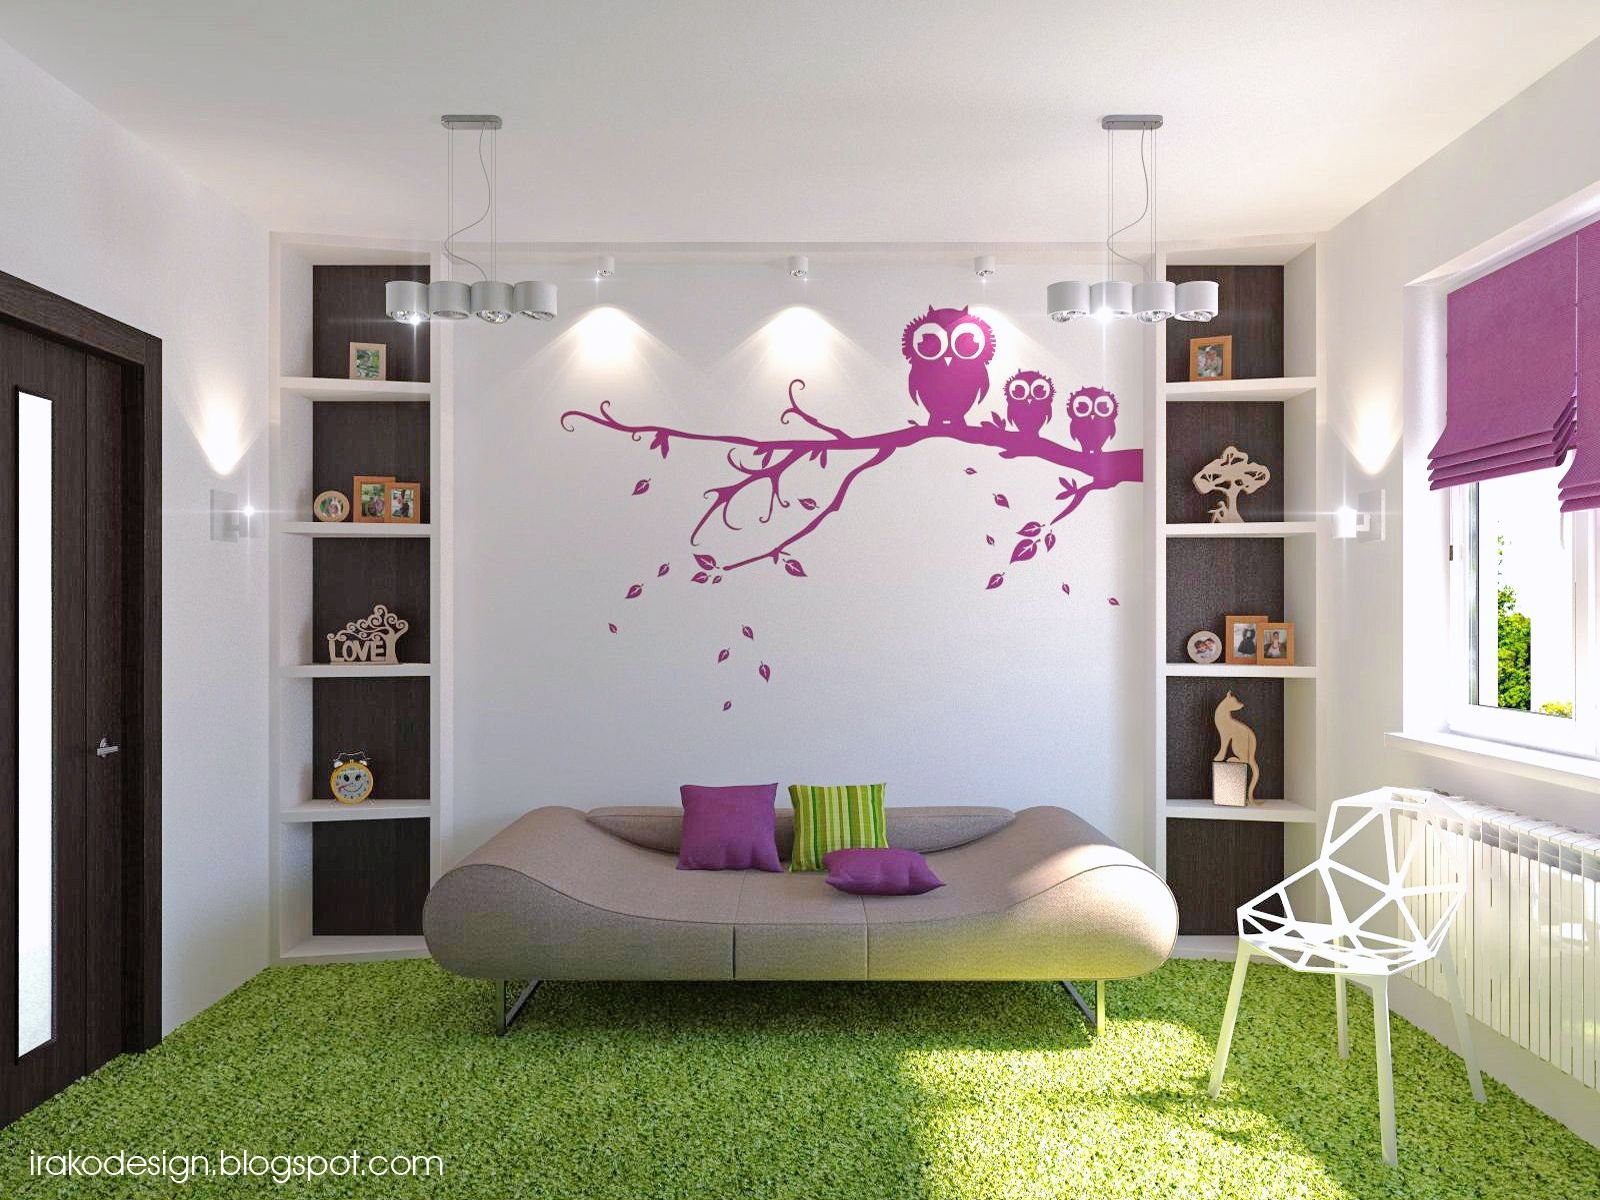 Green bedroom design for girls - Girl Bedroom Ideas For Girl Bedrooms Eas Design Eas Above 4 Via Irako Design Girl Bedroom Eas As Little Beautiful Girls Bedroom